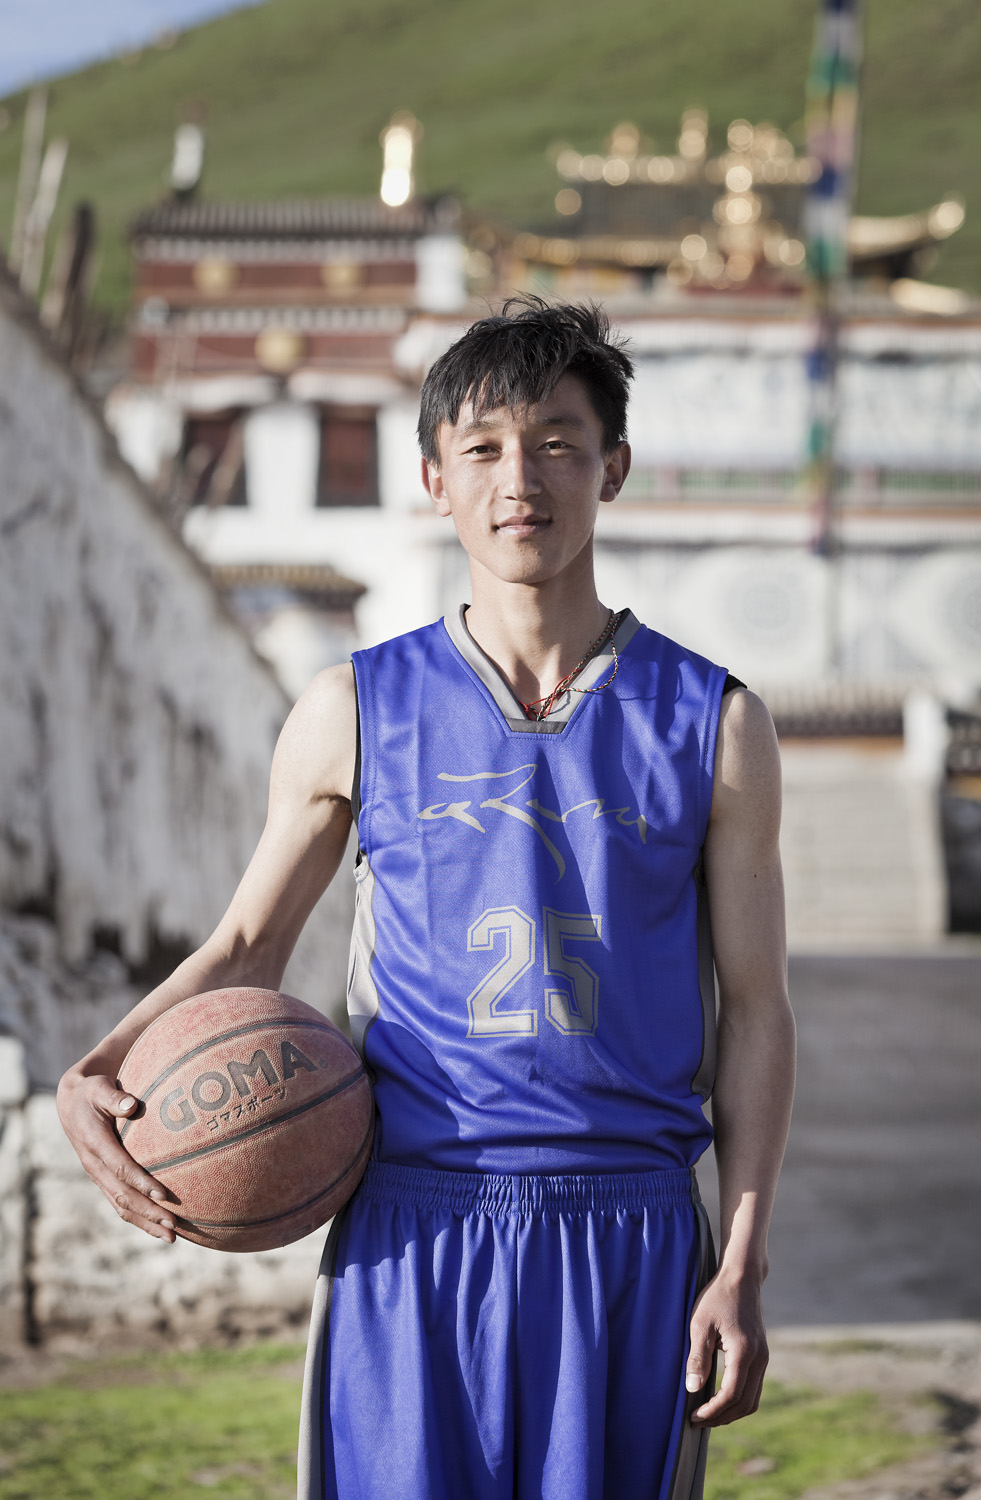 Dorjee Tsering རྡོ་རྗེ་ཚེ་རིང་། - Team Manager, wife Tsering Kyi plays on the women's team, married into the village from a nearby region called Jone